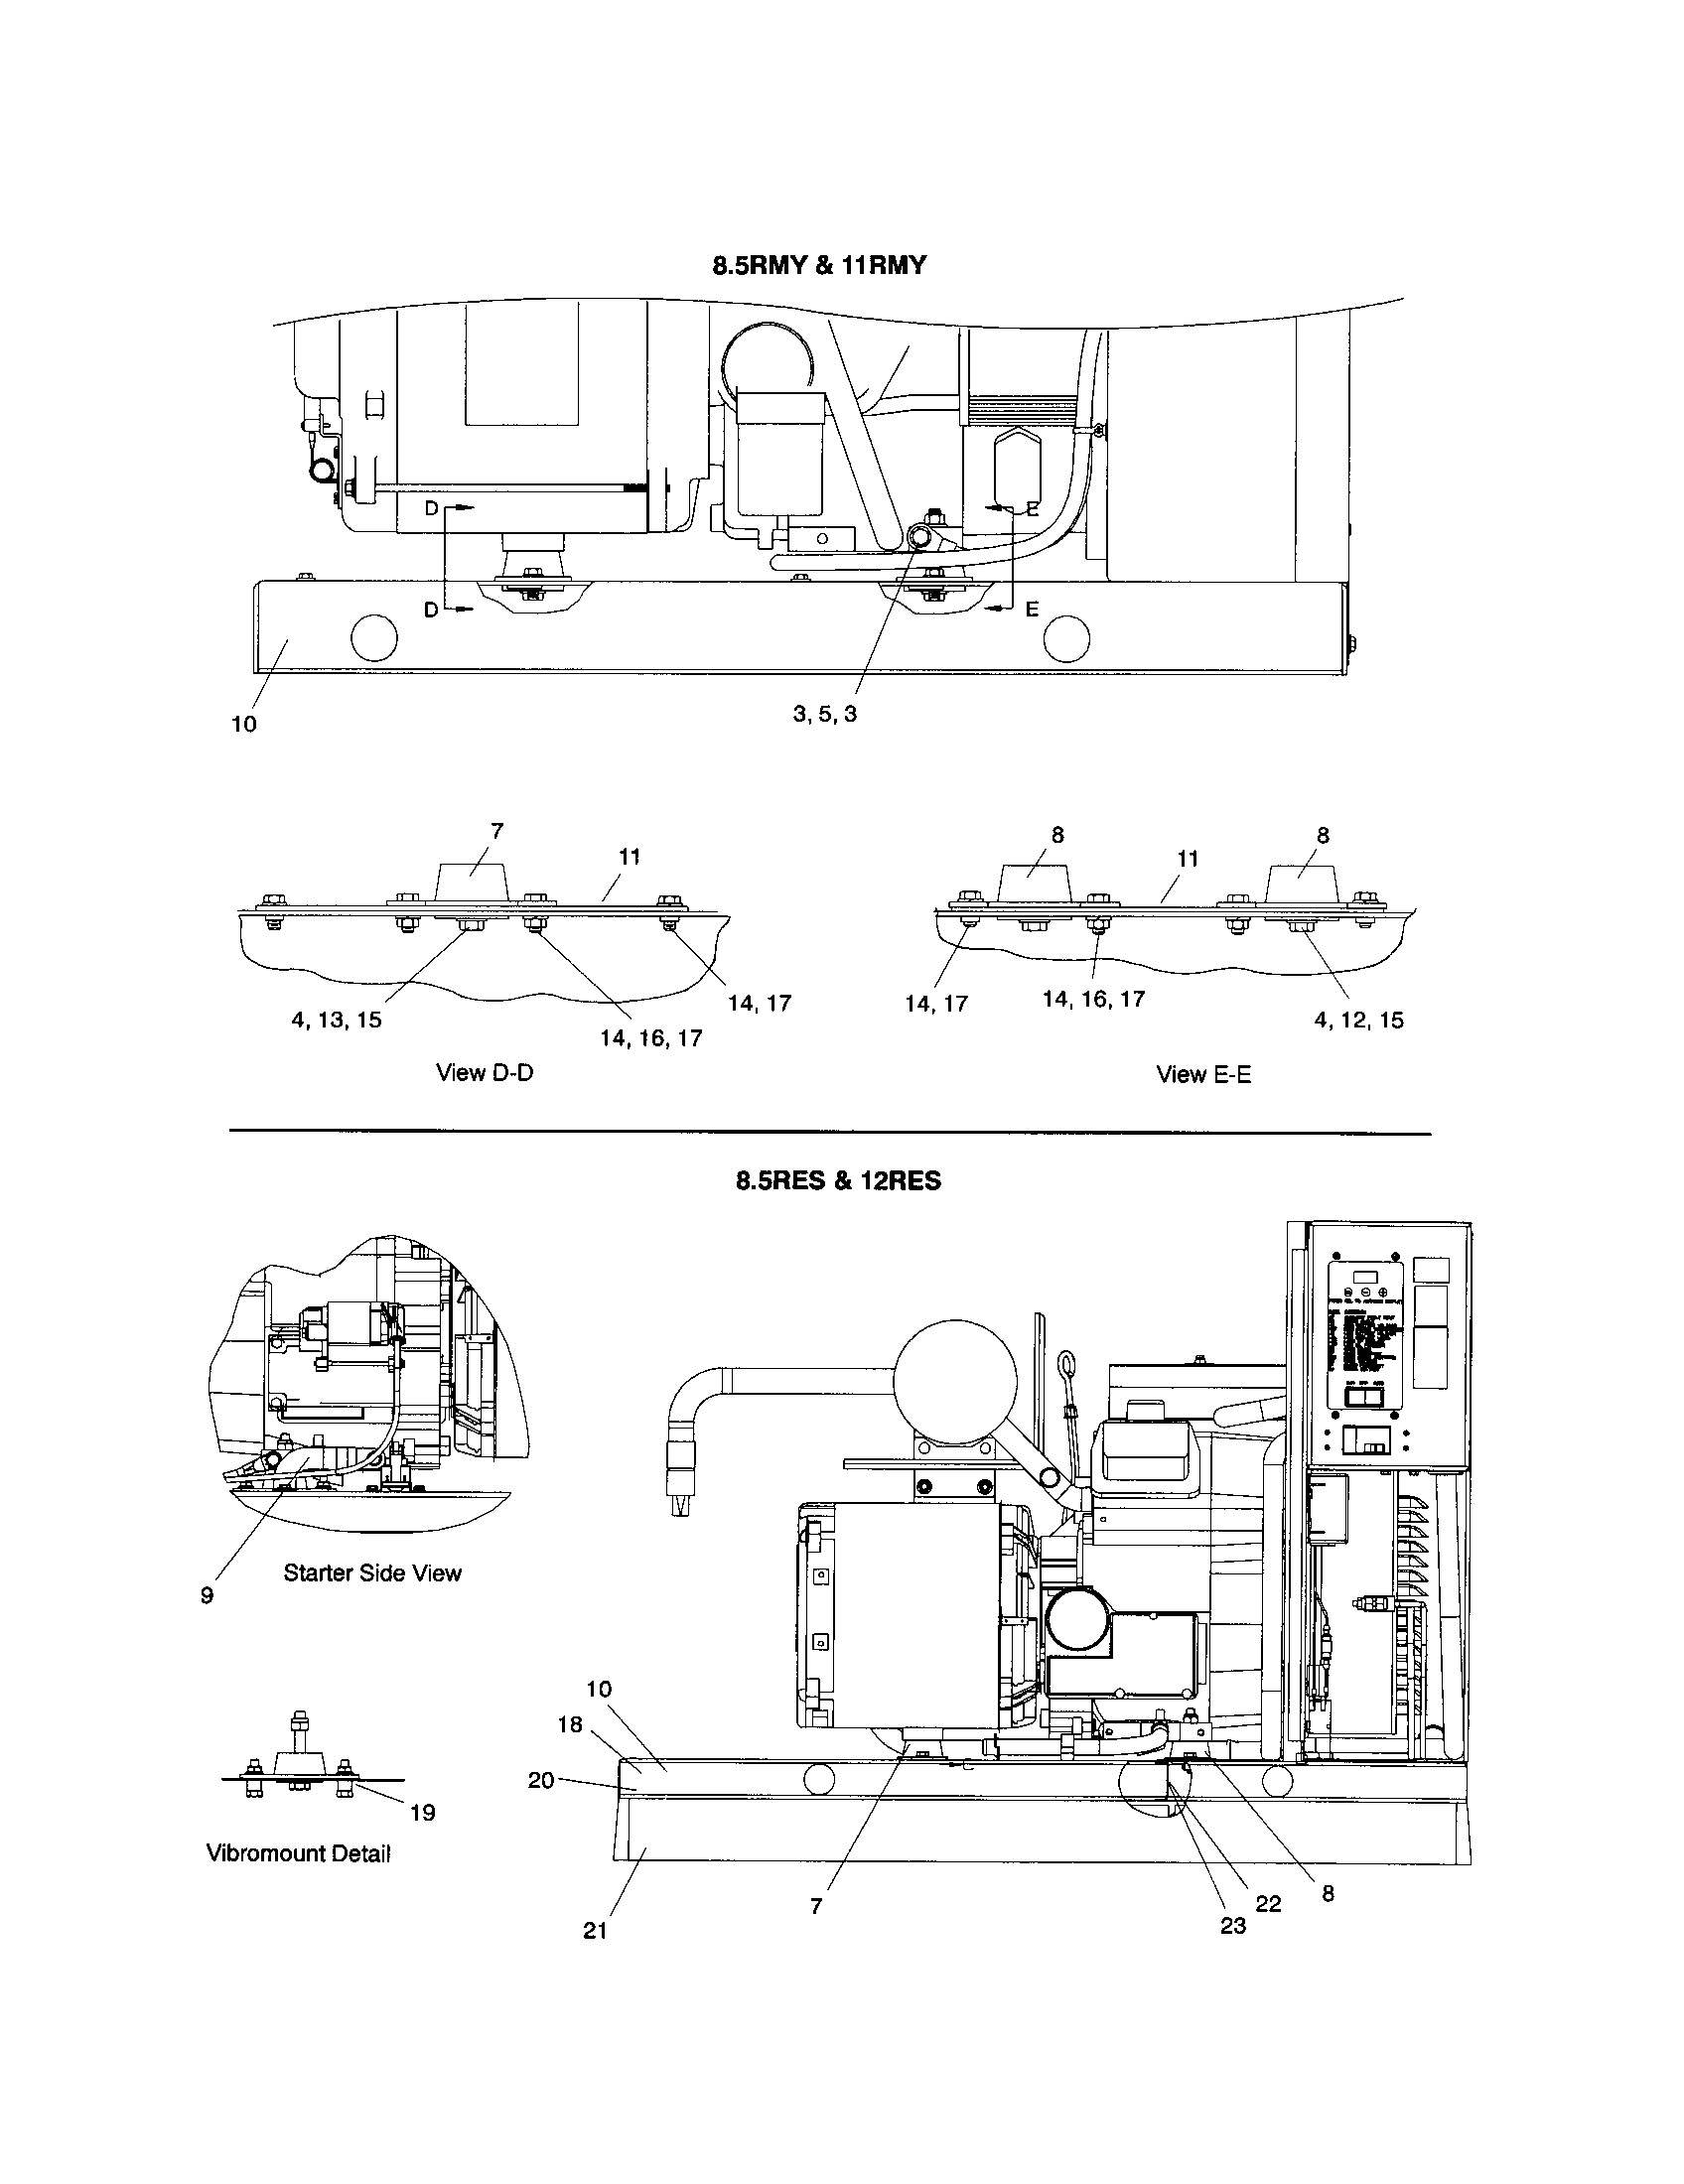 Kohler Wiring Diagram For Cv740s K341 Ch22s Engine K582s Schematics 37